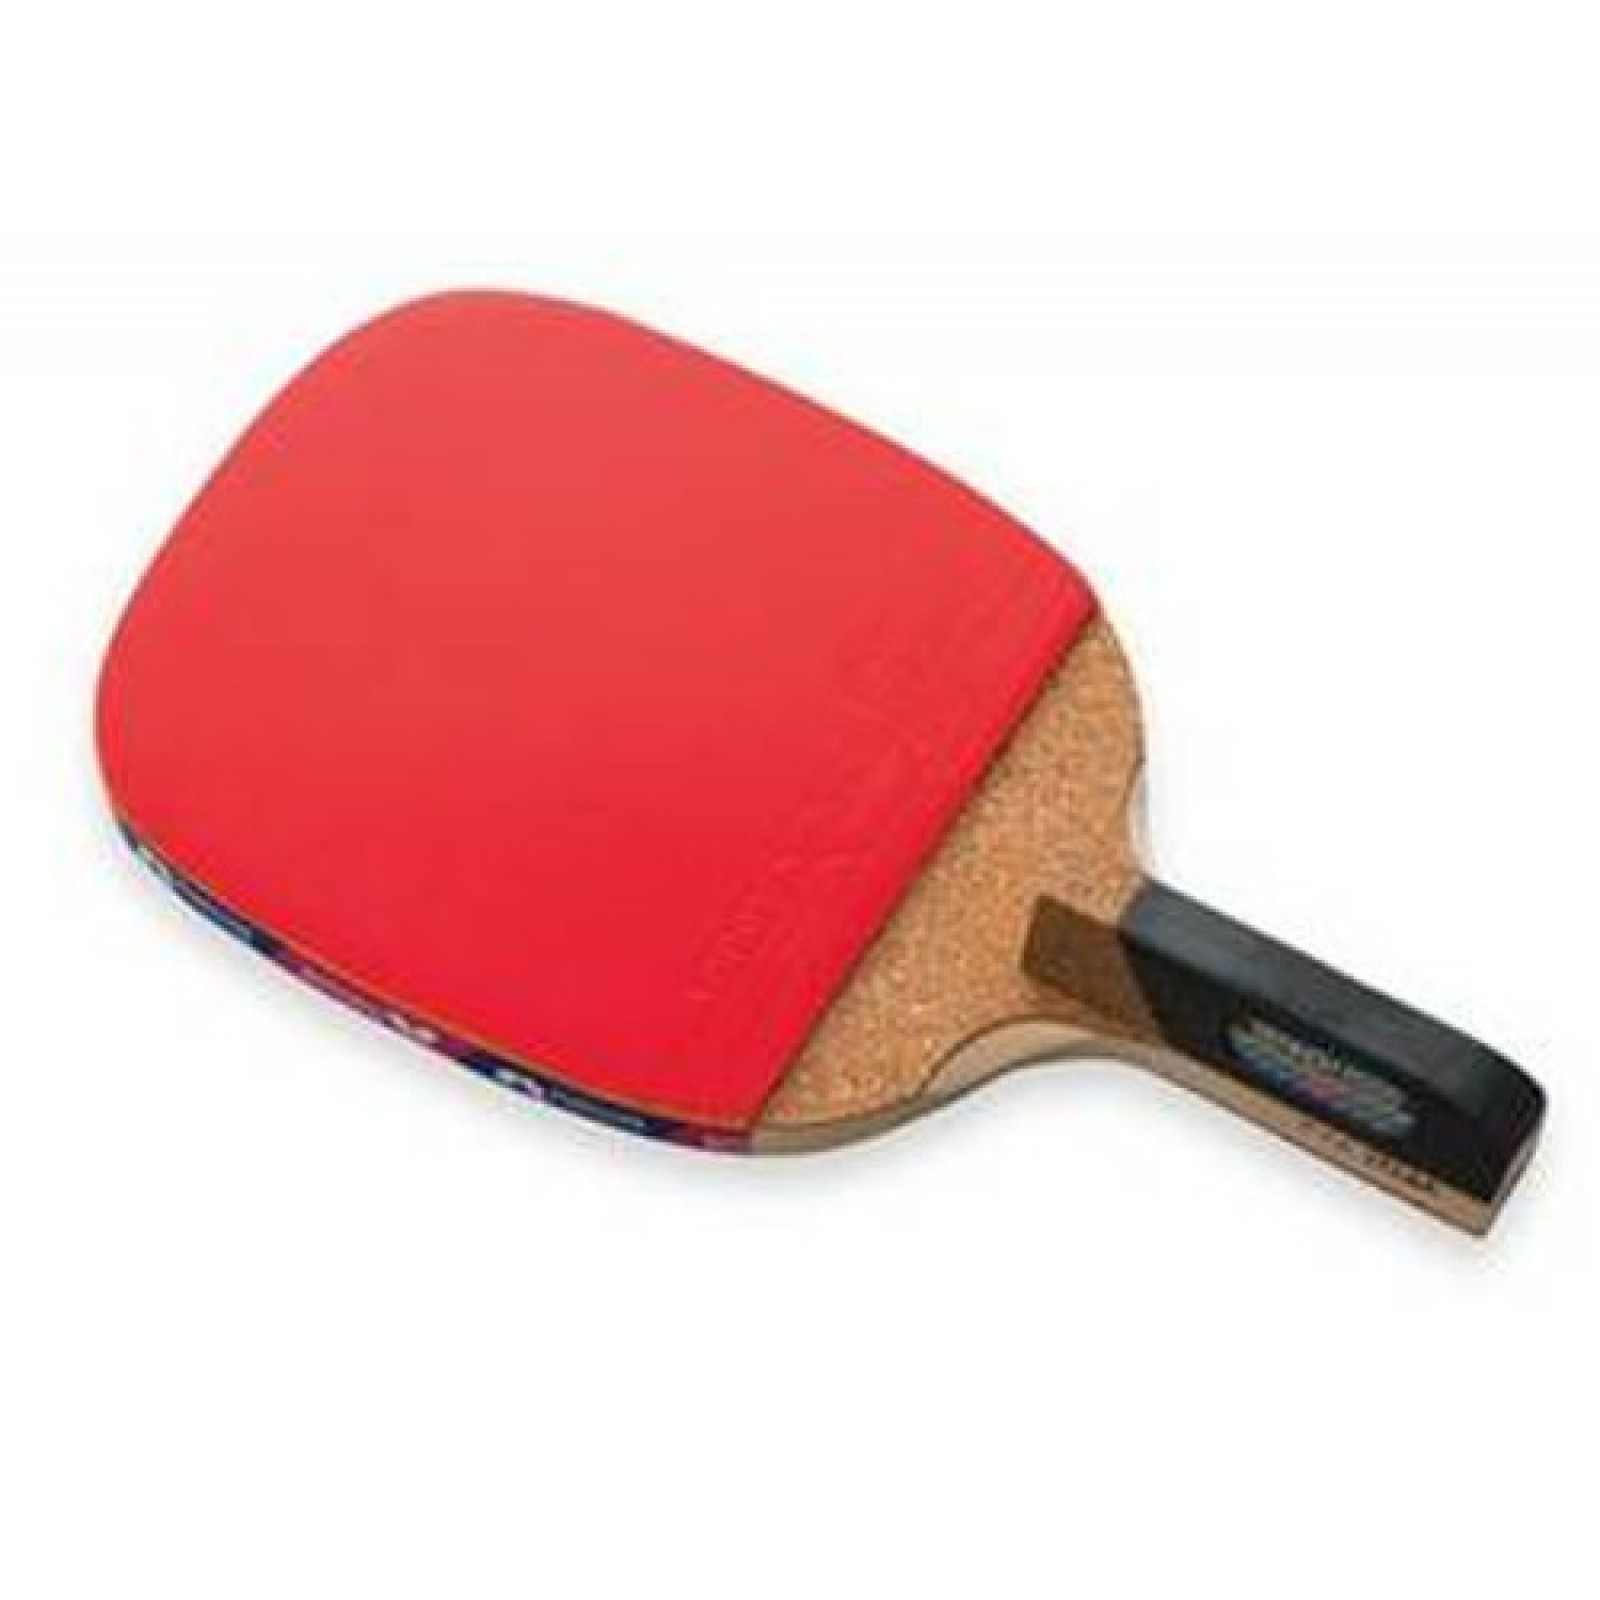 Butterfly Senkoh 2000 Penhold Table Tennis Racket with Rubber and ...